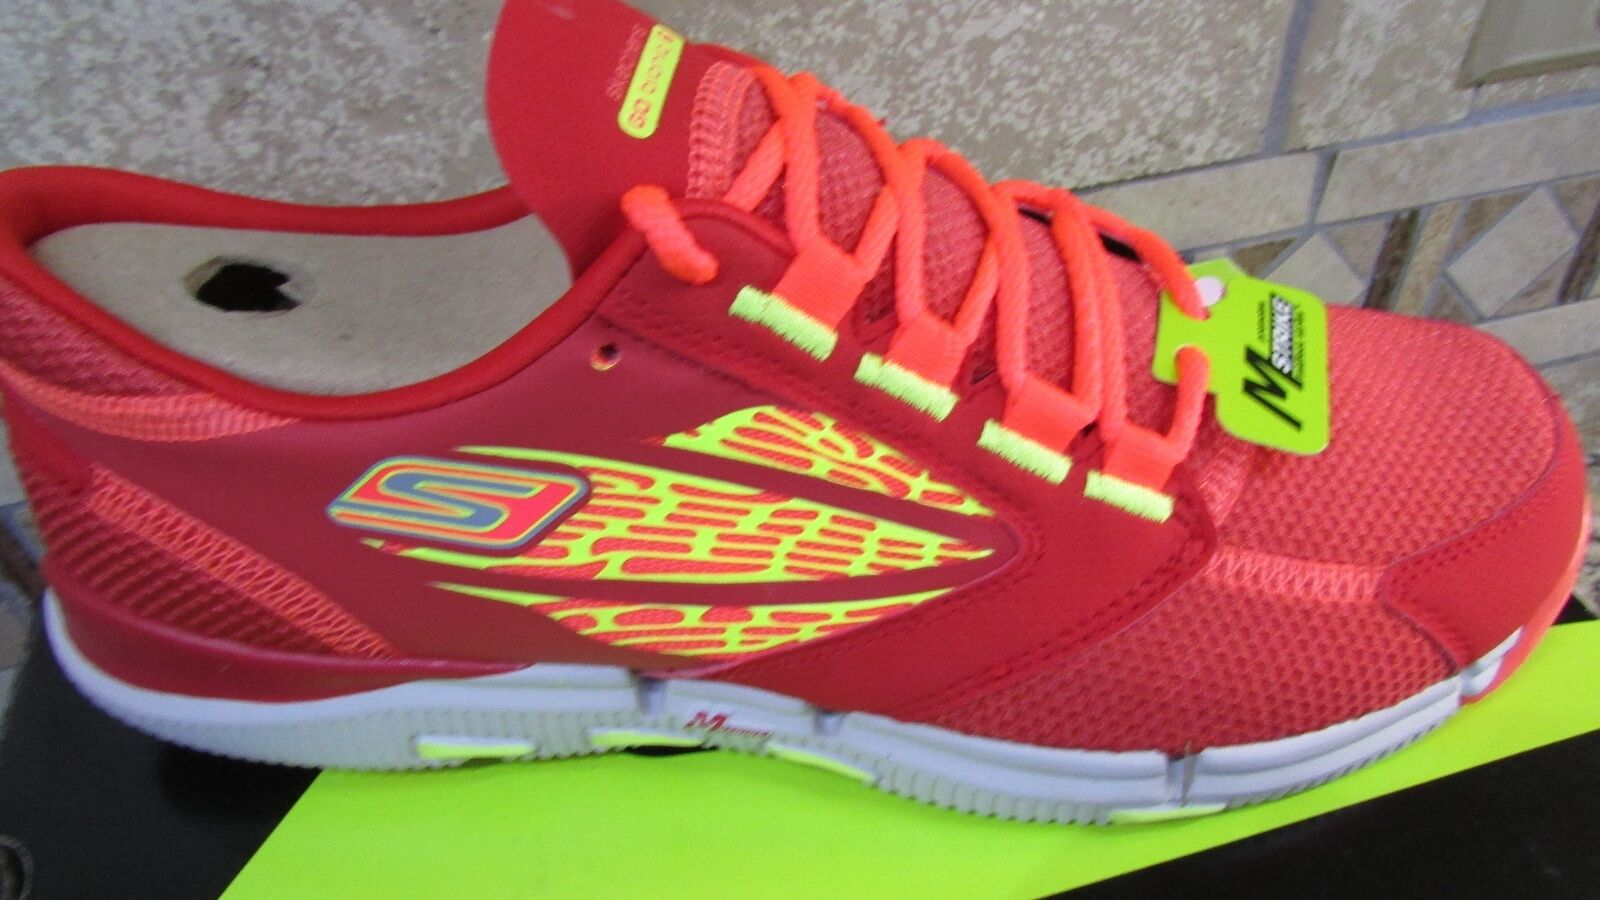 NEW SKECHERS GOBIONIC RIDE ATHLETIC SHOES MENS 7.5  SNEAKERS The latest discount shoes for men and women